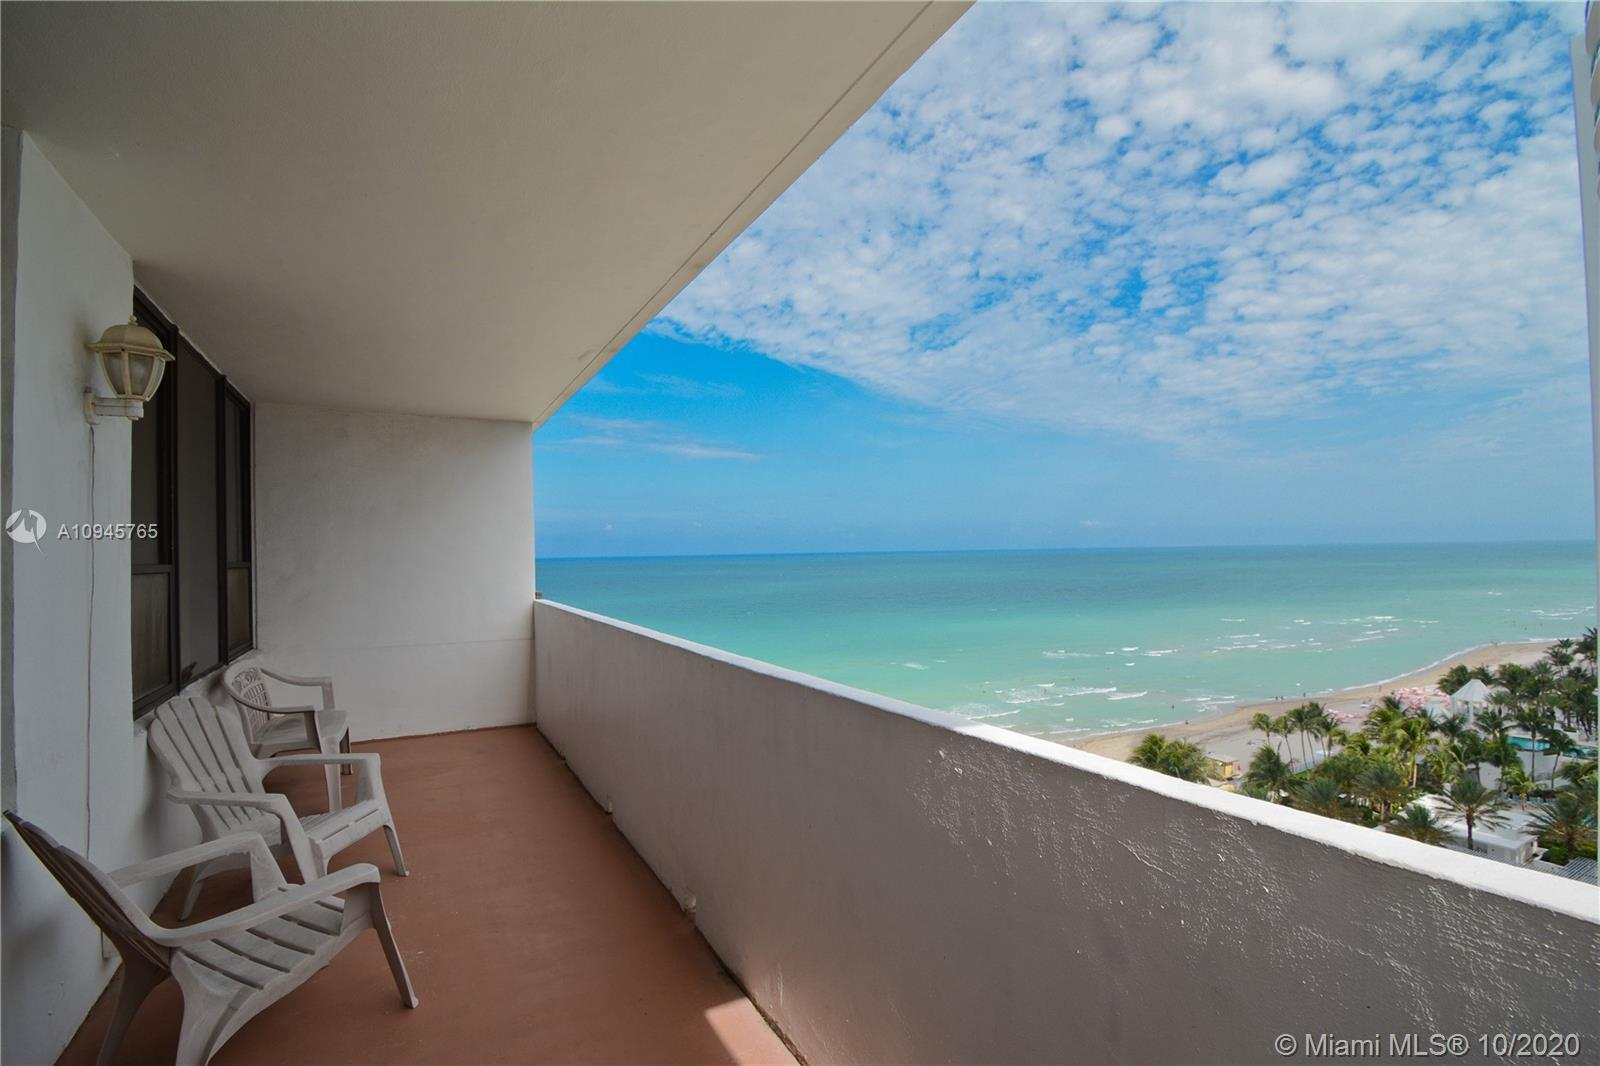 OCEANFRONT BLDG! FURNISHED 14TH FL 2 BEDROOM/2 BATH WITH FABULOUS OCEANVIEWS, OPEN KITCHEN, LARGE BA